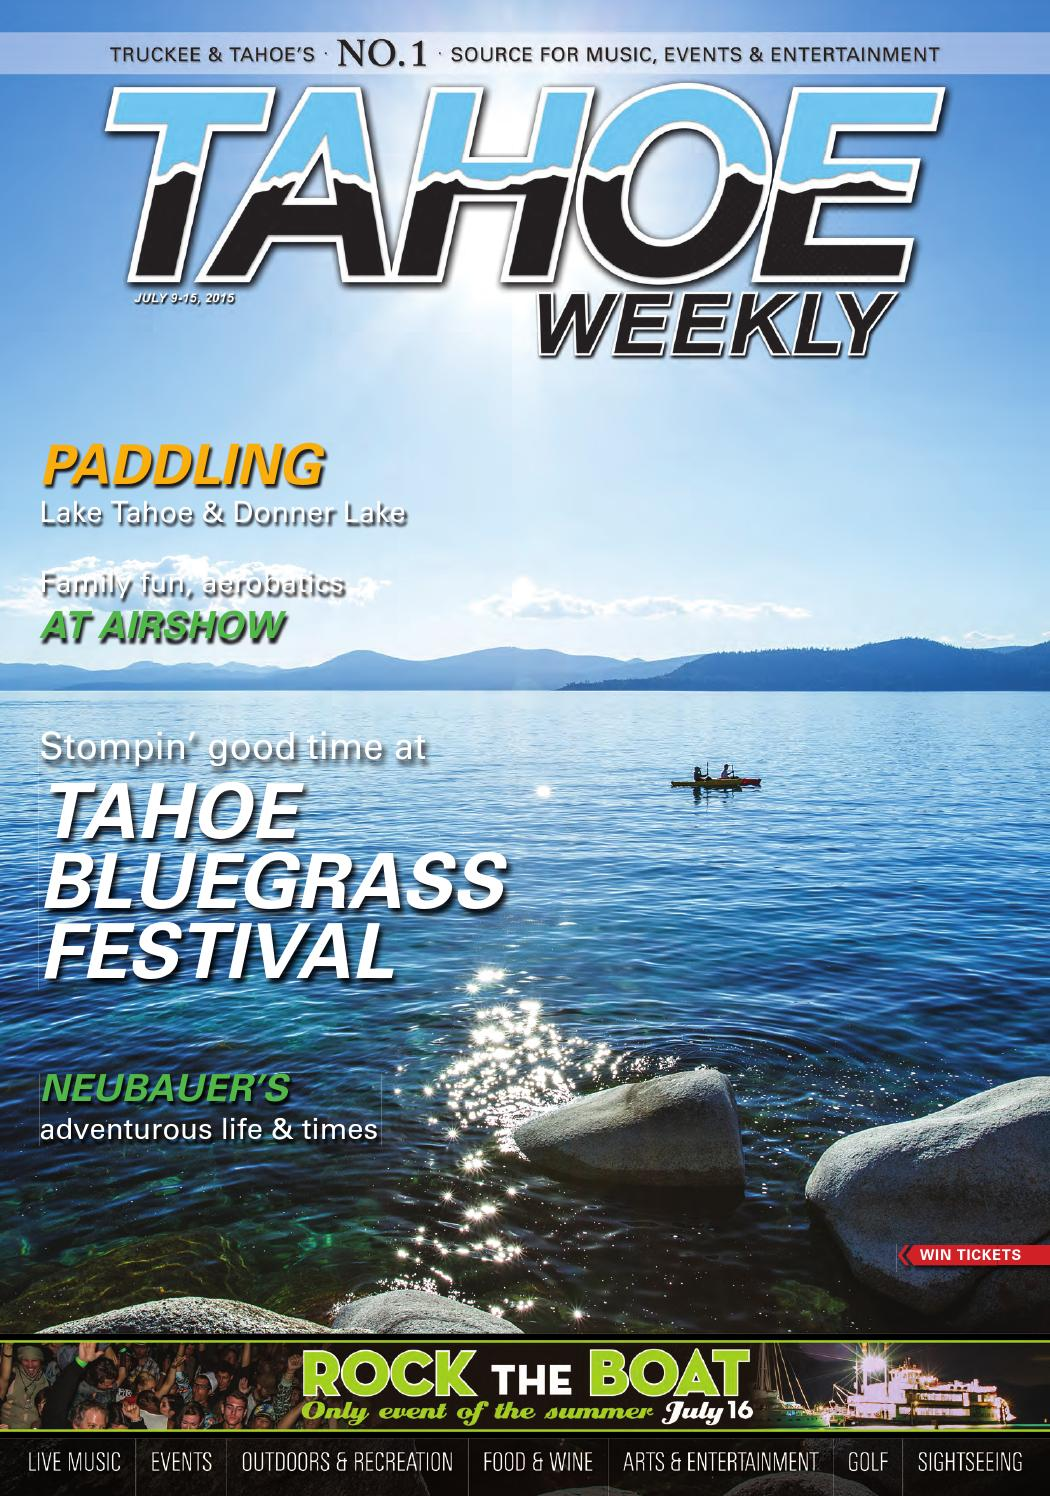 Cucina Restaurant Graeagle July 9 To July 15 By Tahoe Weekly Issuu